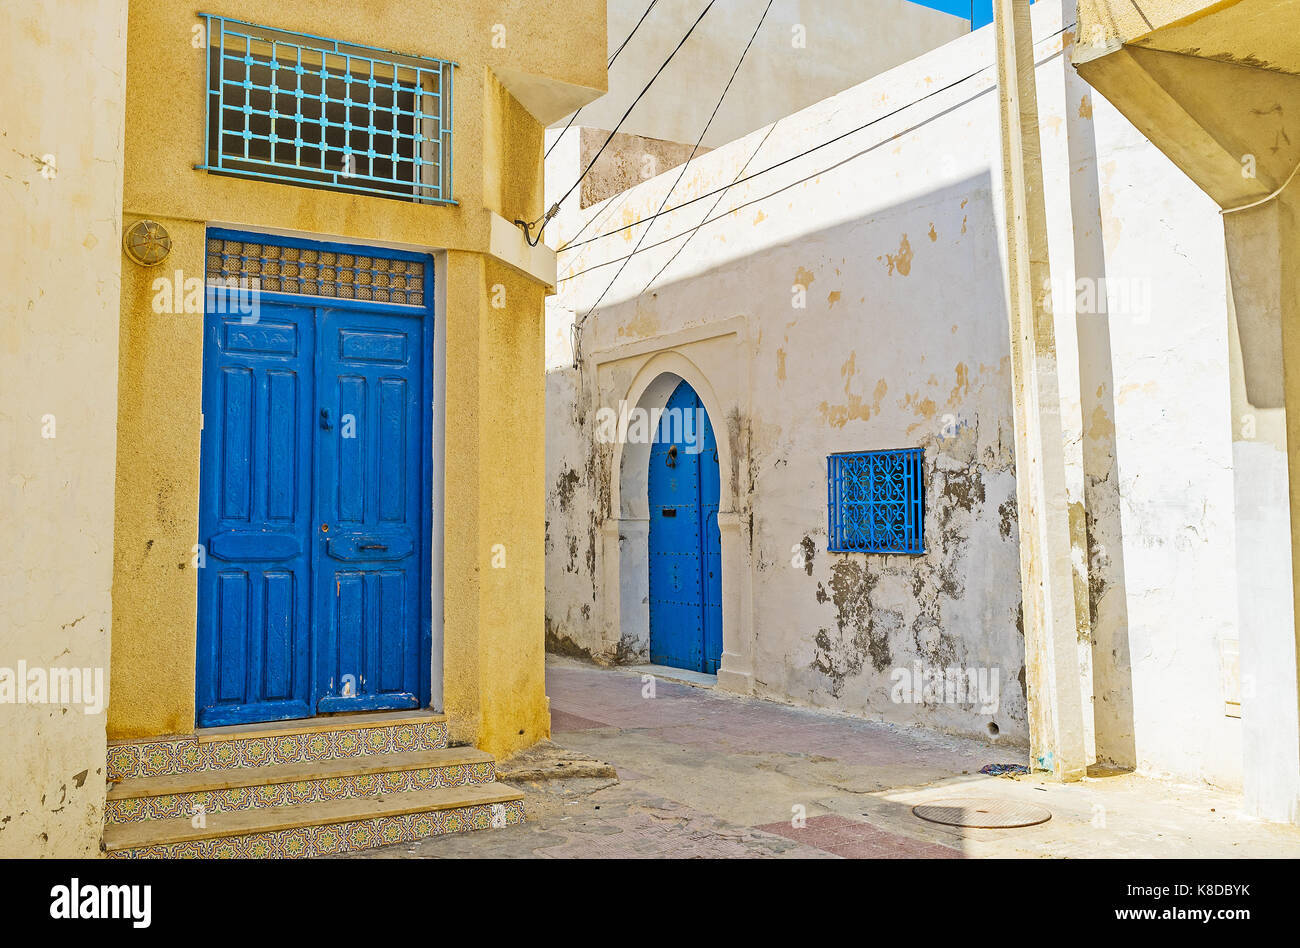 The quiet street of Medina with historic edifices, traditional blue doors and tiled stairs, Monastir, Tunisia. - Stock Image